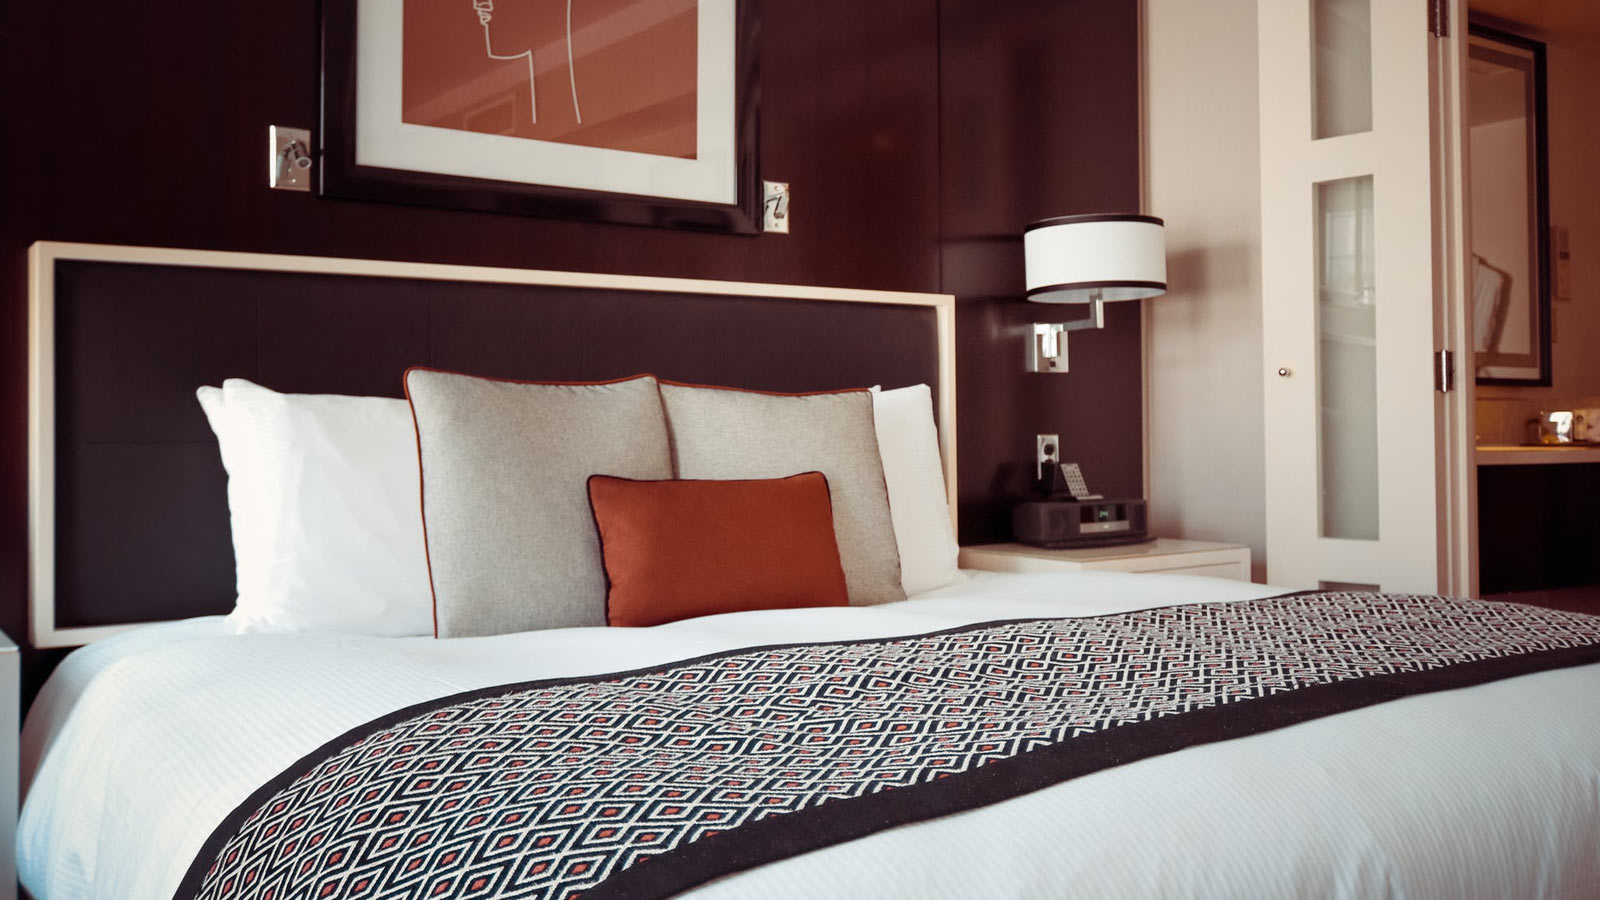 Best Hotels For Business In Houston